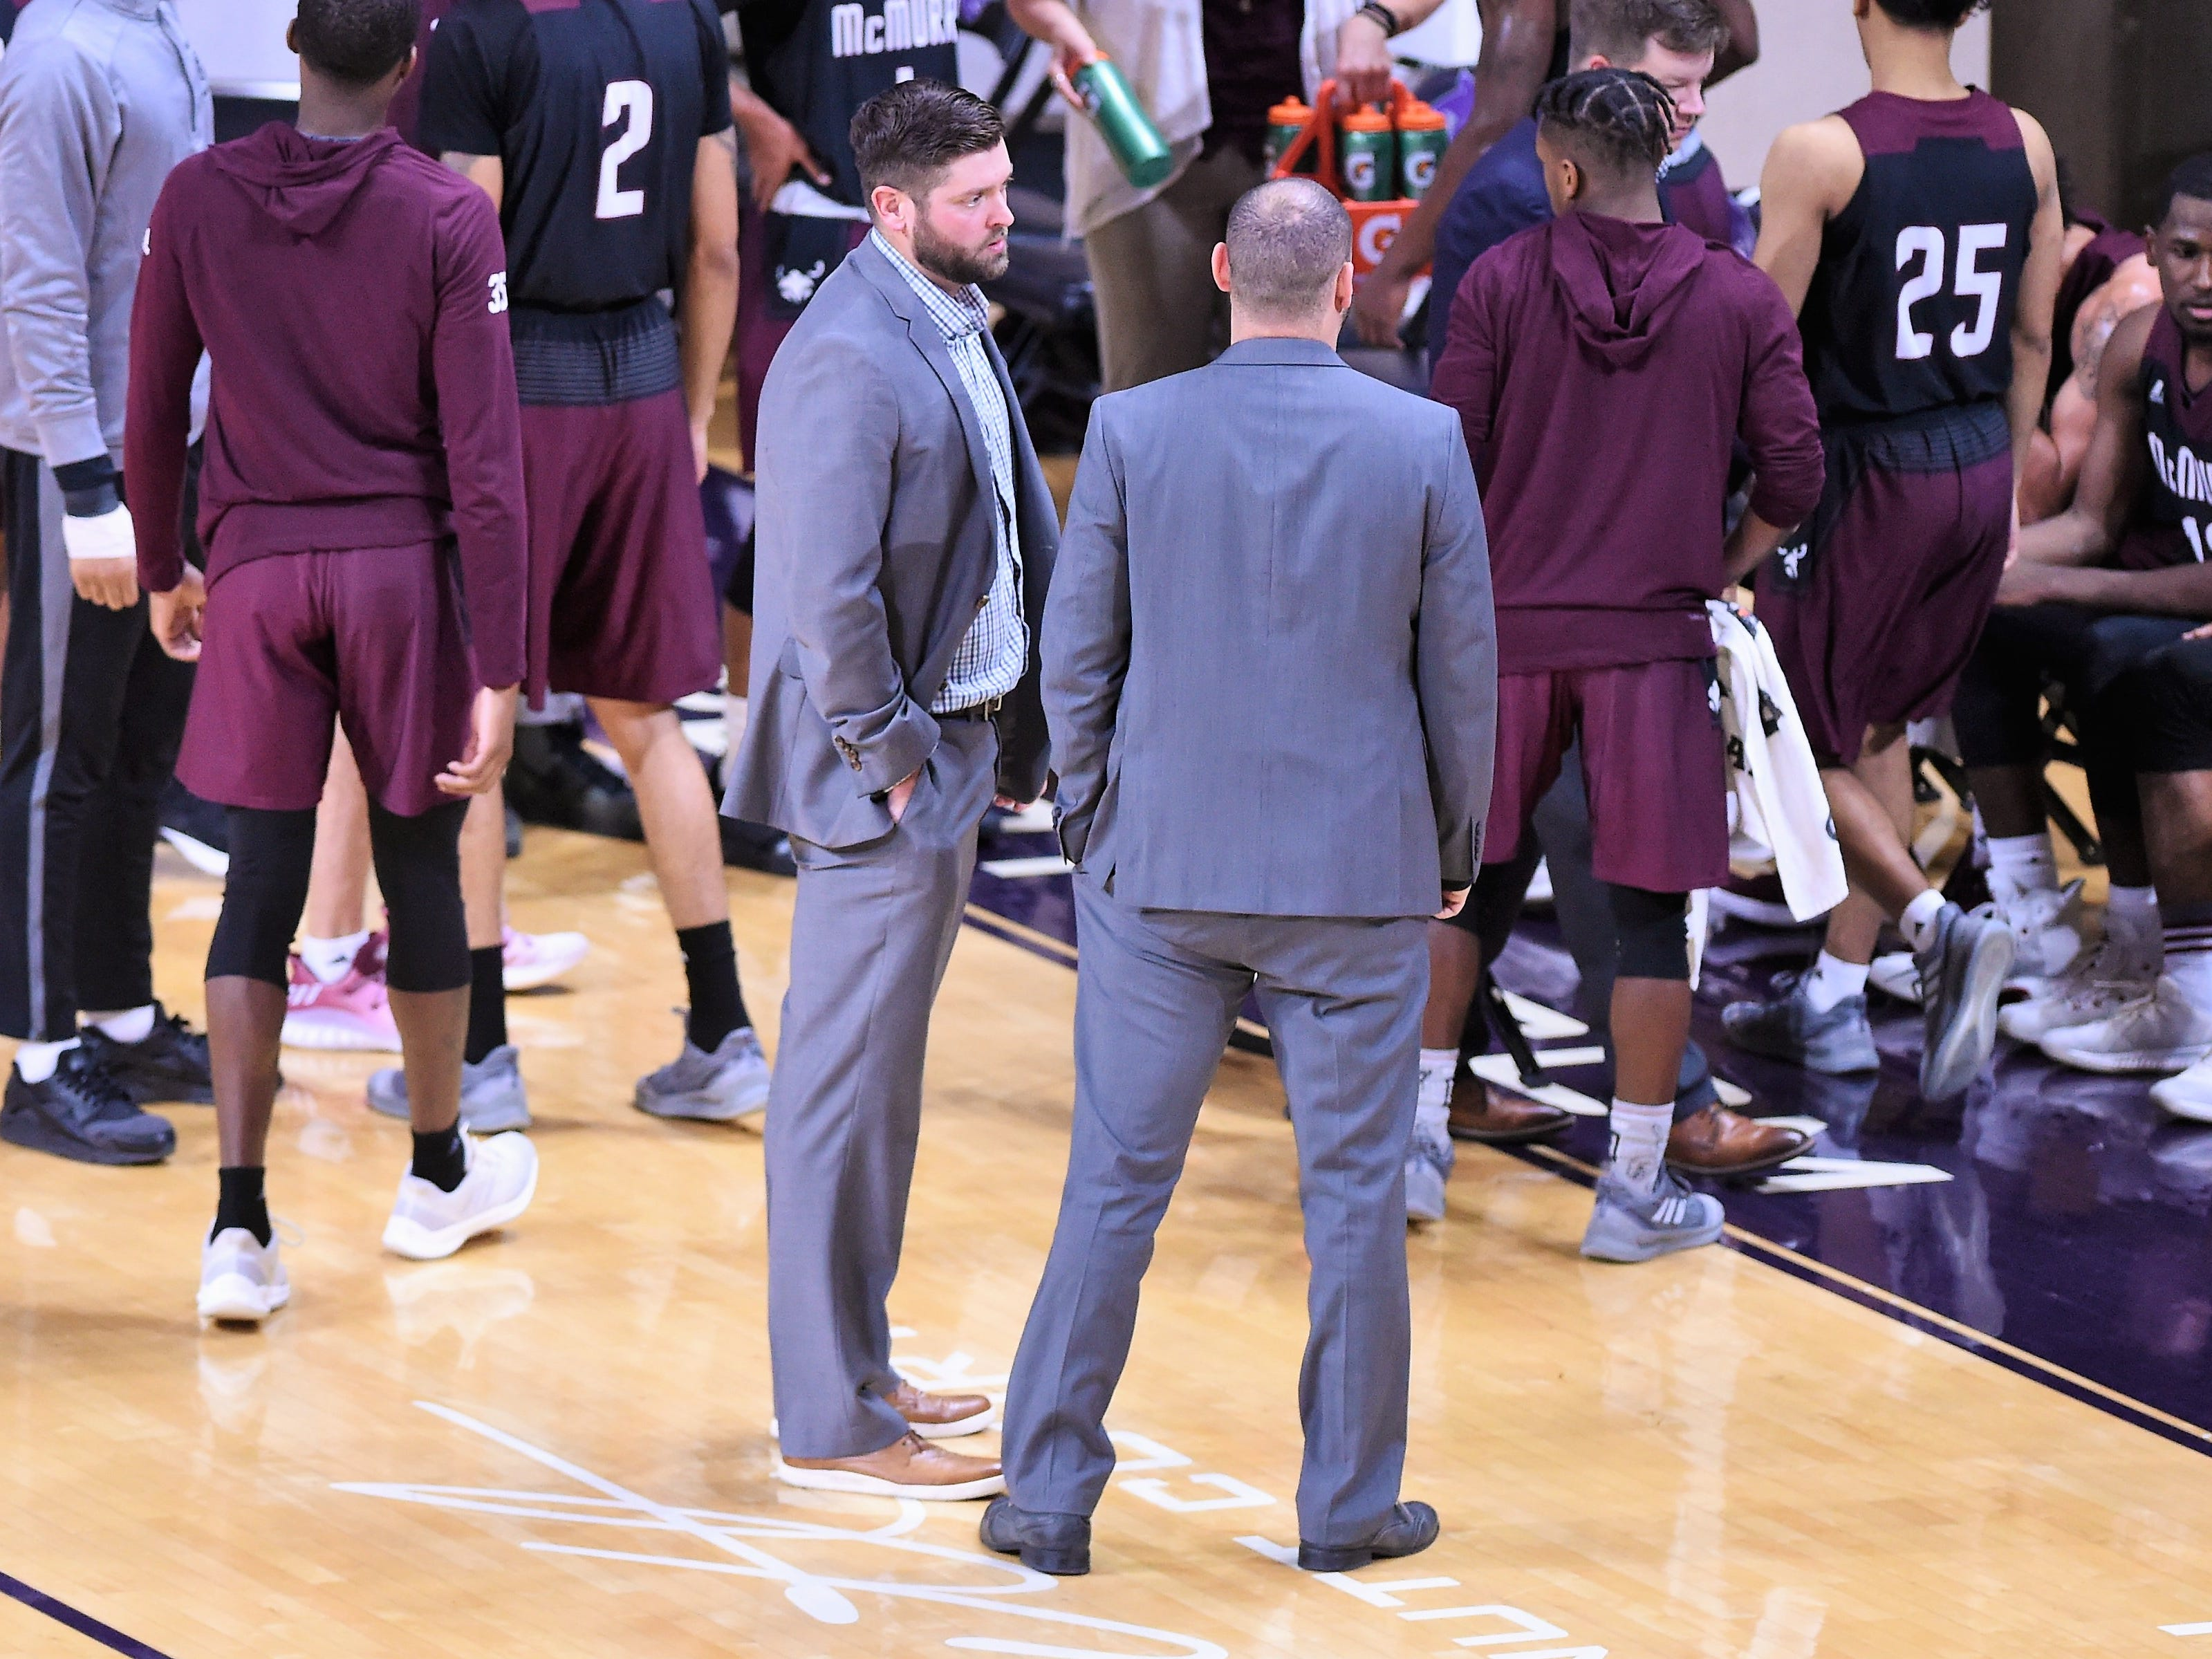 McMurry head coach Zach Pickelman, left, talks with assistant coach Rob Yeatts during a timeout against ACU on Saturday at Moody Coliseum.